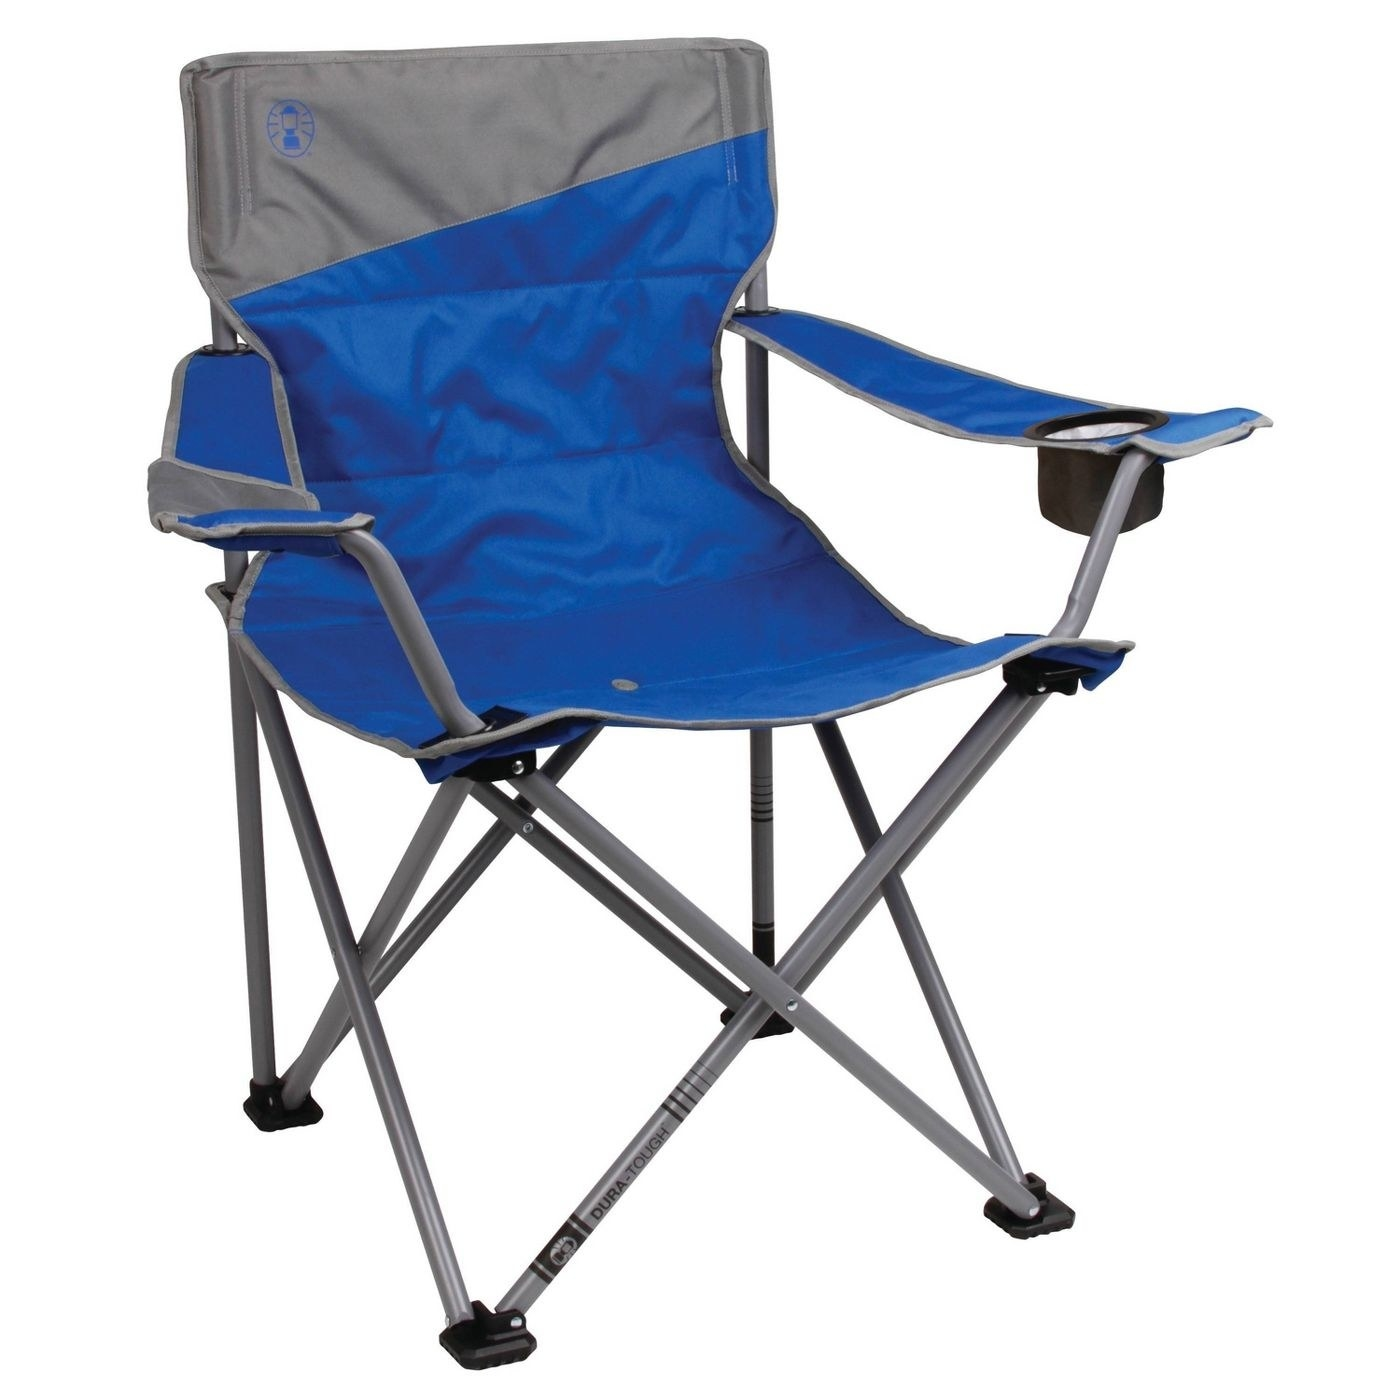 The camping chair